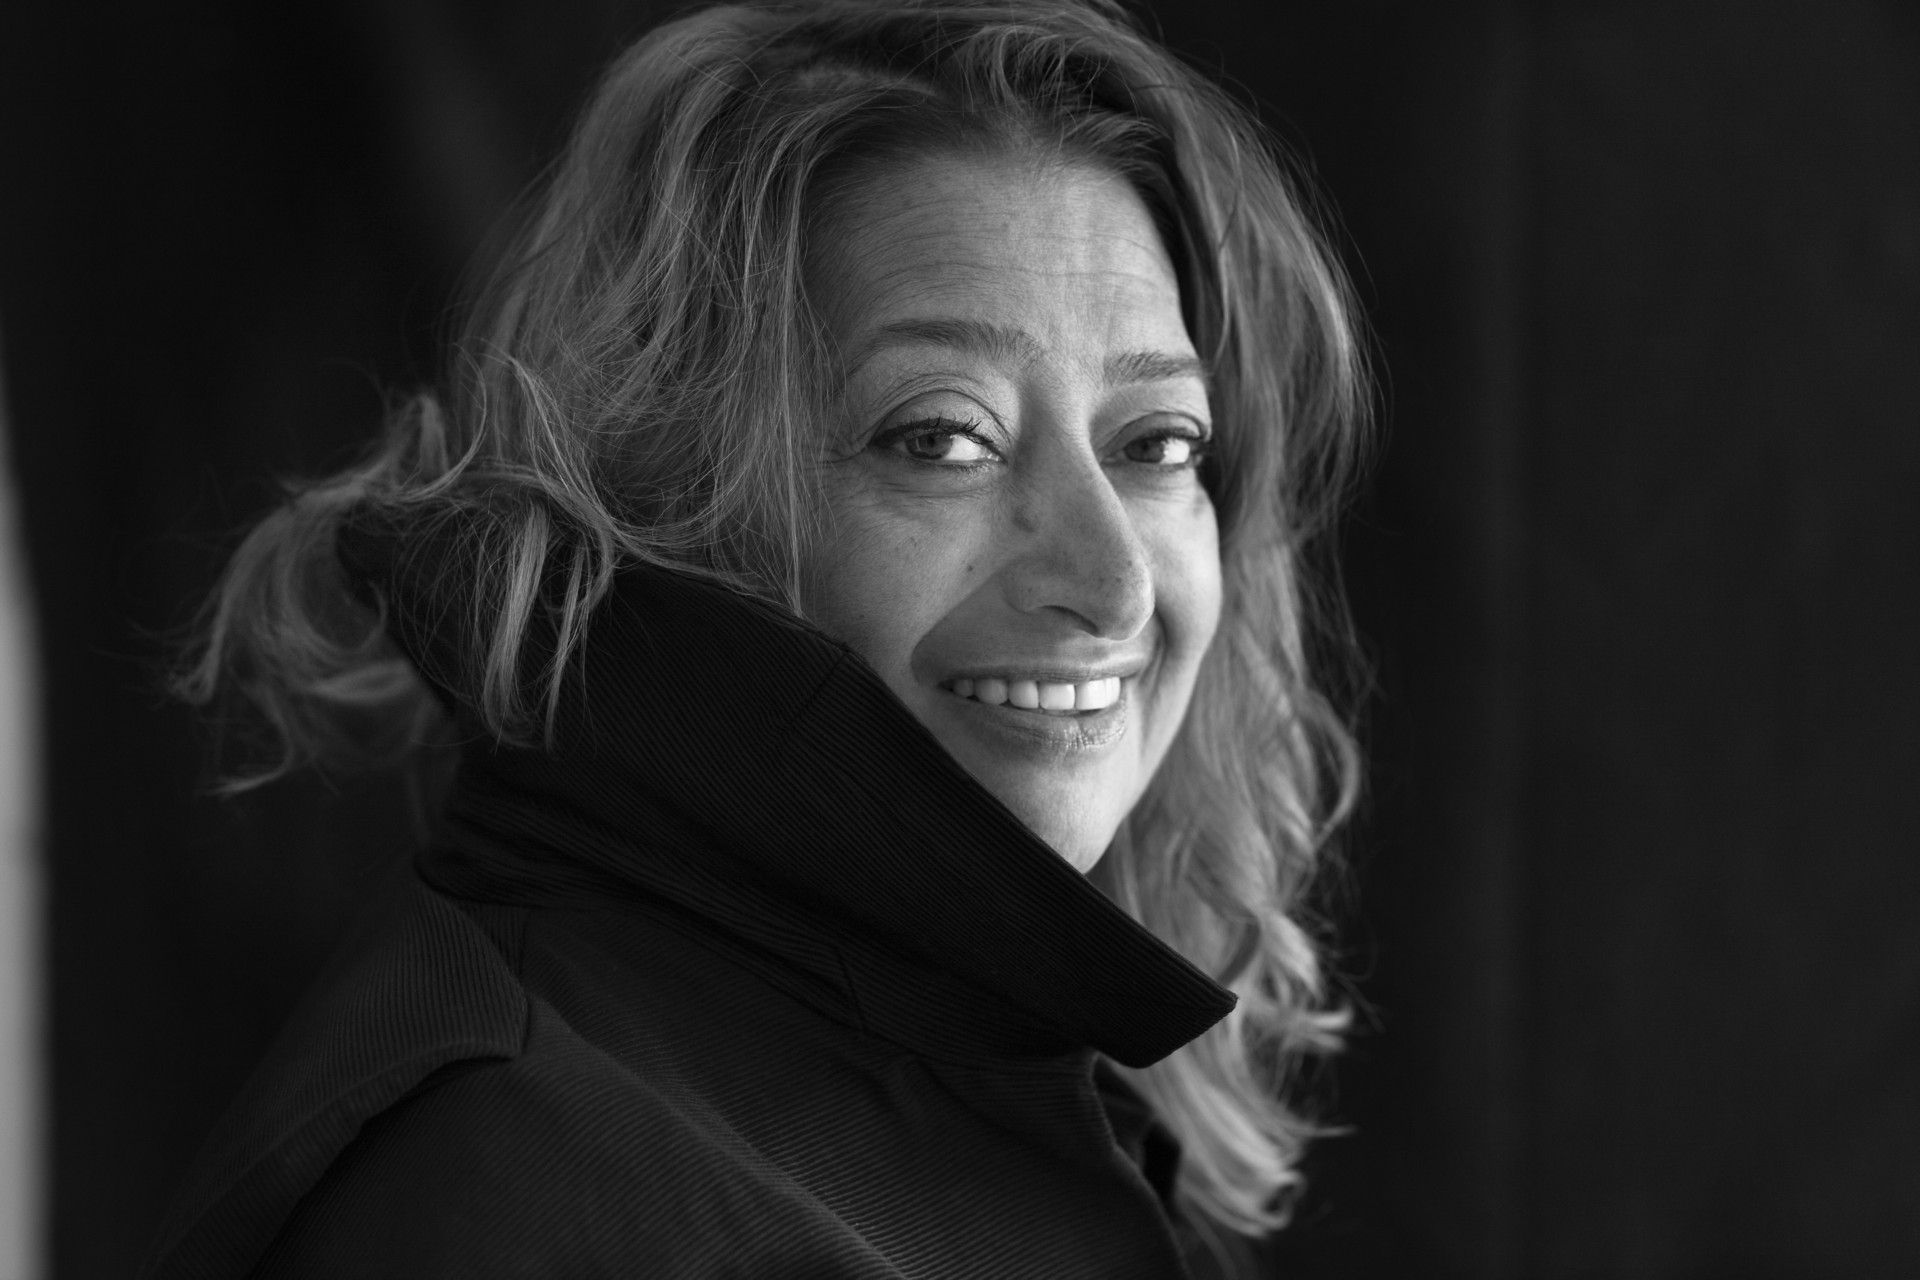 Zaha Hadid photo Brigitte Lacombe